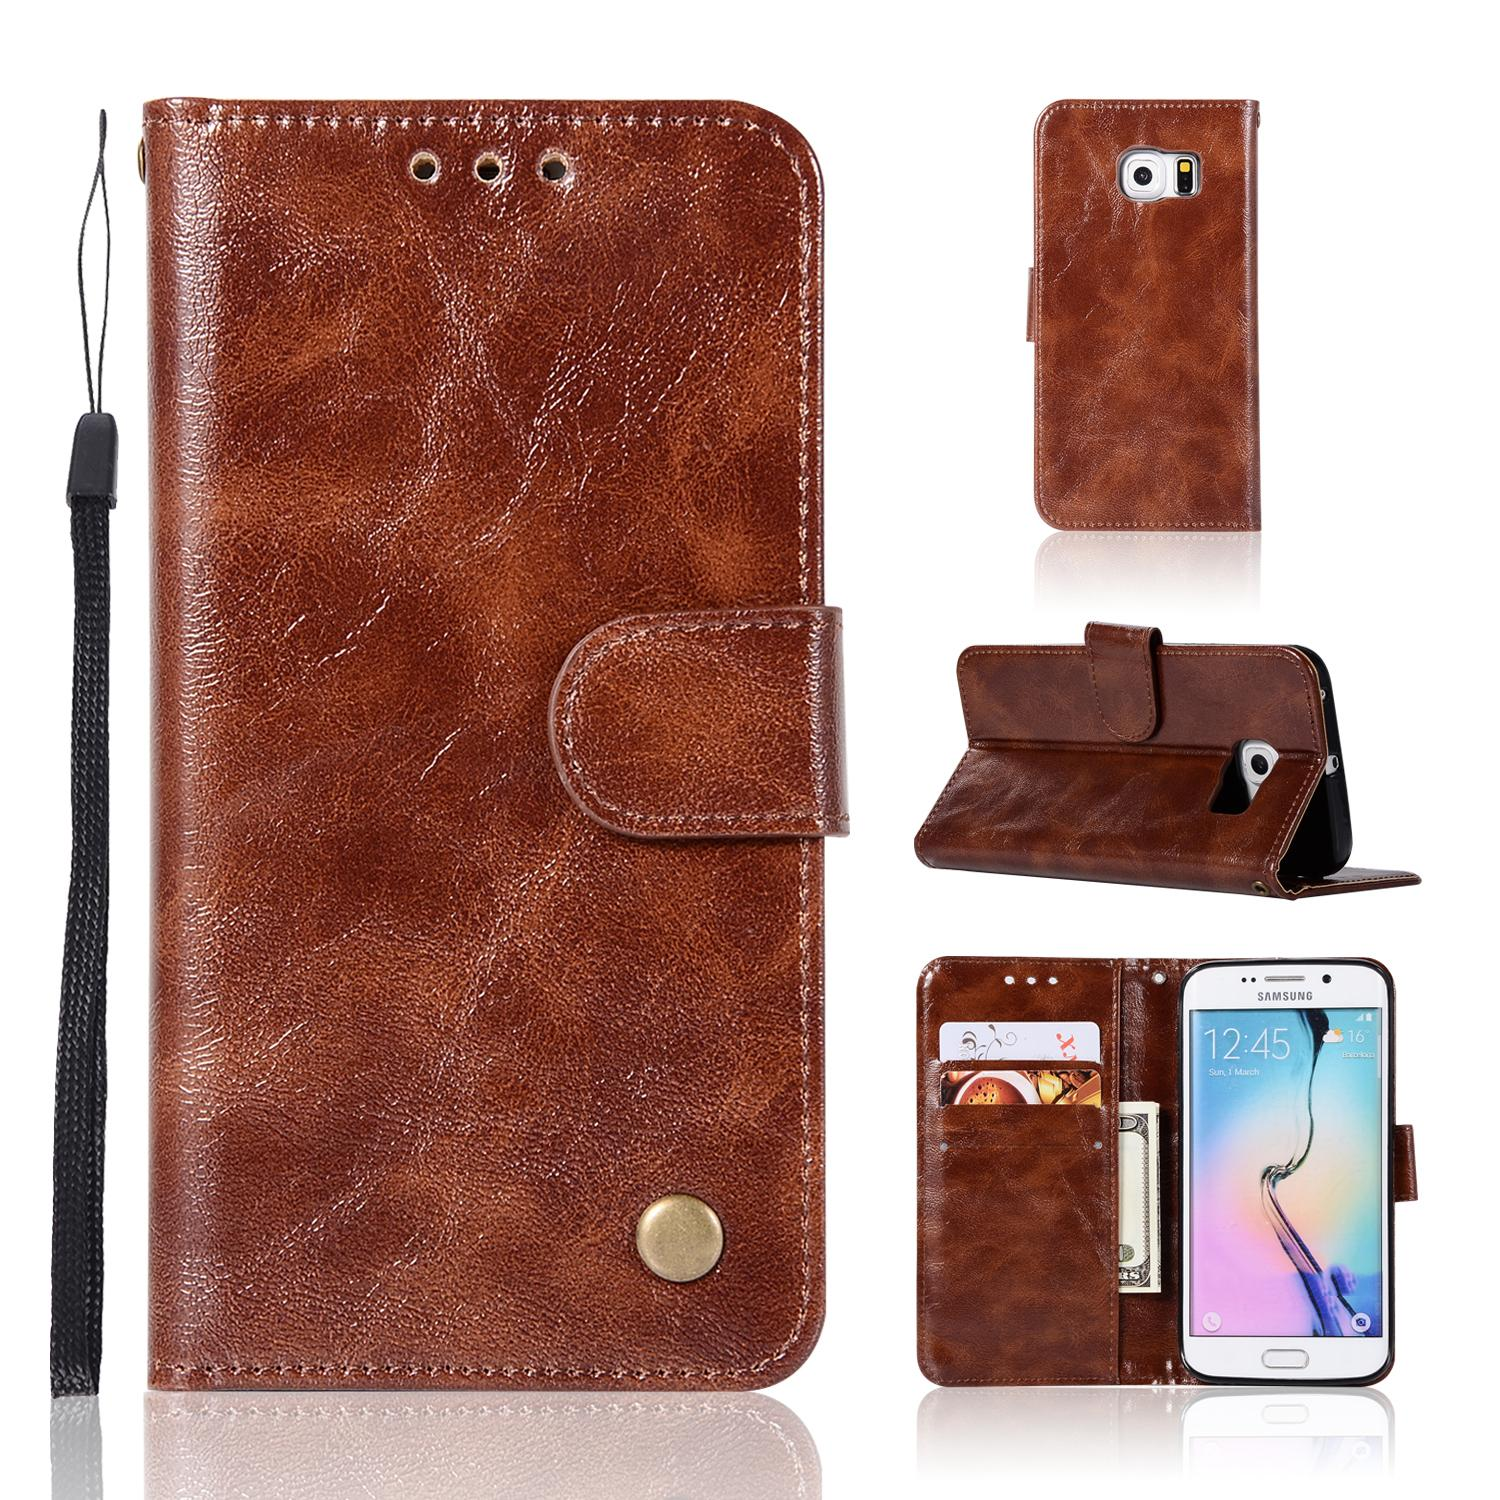 Casing For Samsung Galaxy S7 Edge (g9350),reto Leather Wallet Case Magnetic Double Card Holder Flip Cover By Life Goes On.